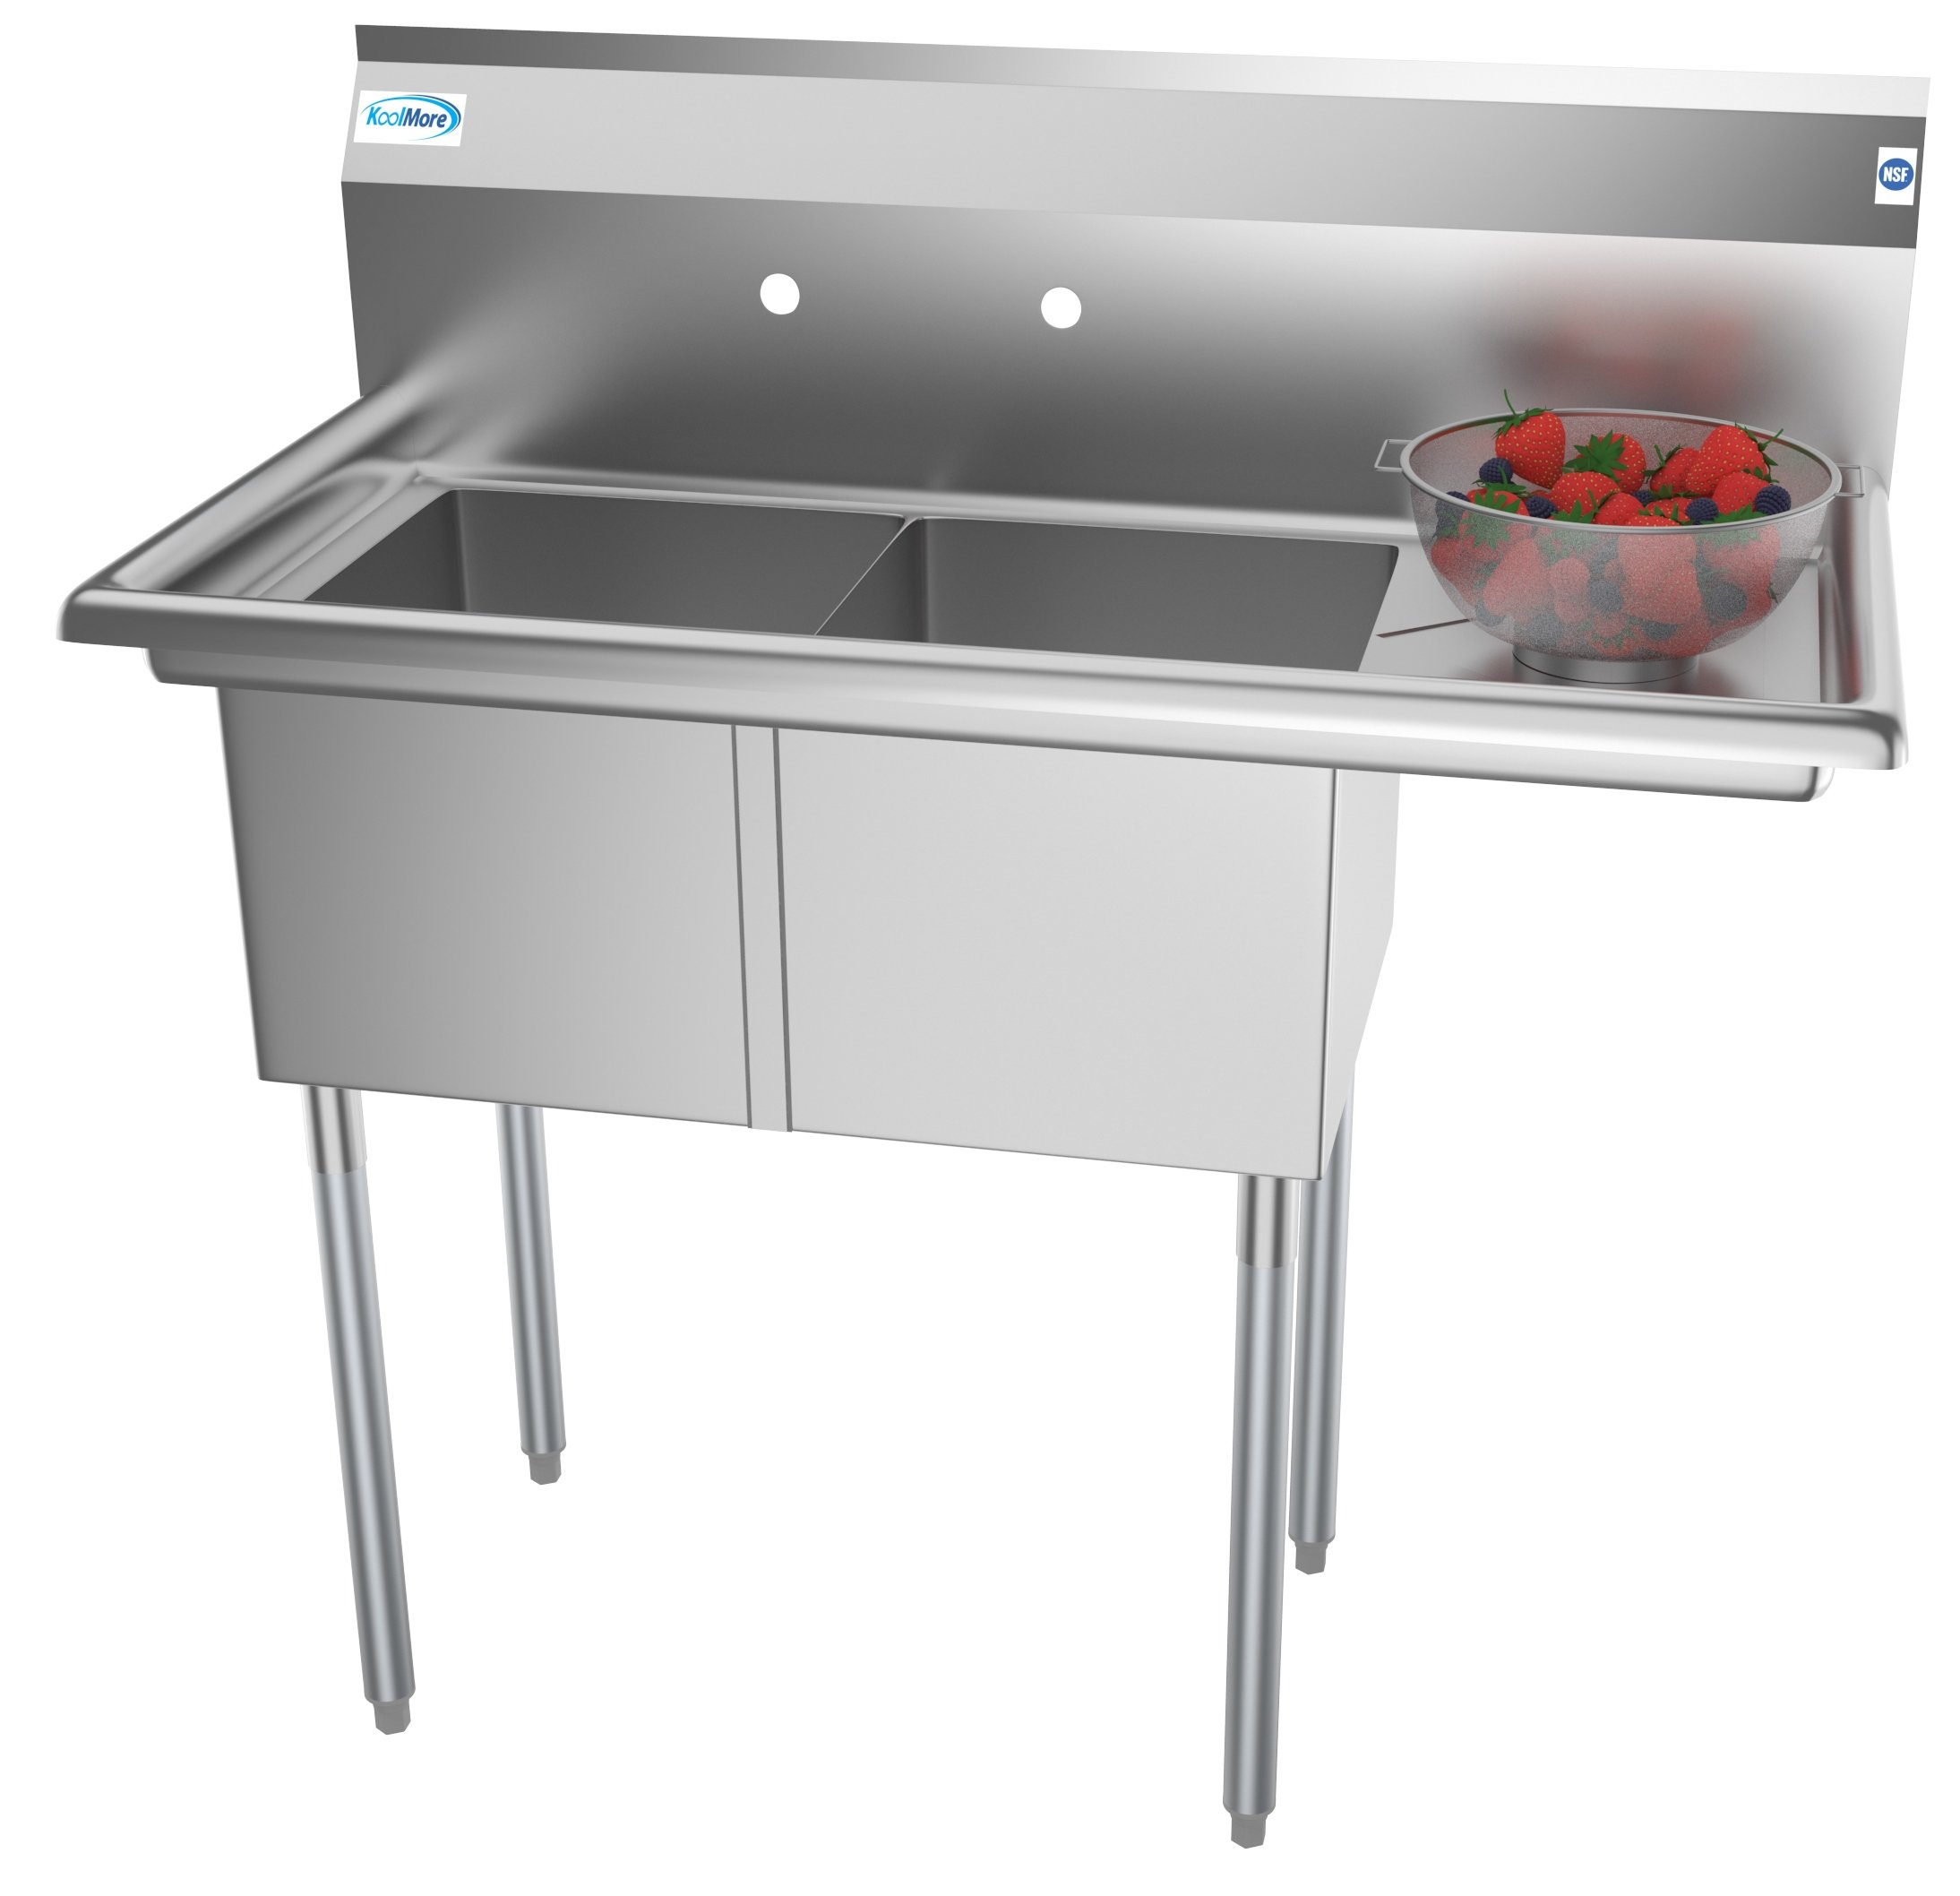 """2 Compartment 43"""" Stainless Steel Commercial Kitchen Prep & Utility Sink with Drainboard - Bowl Size 14"""" x 16"""" x 11"""""""